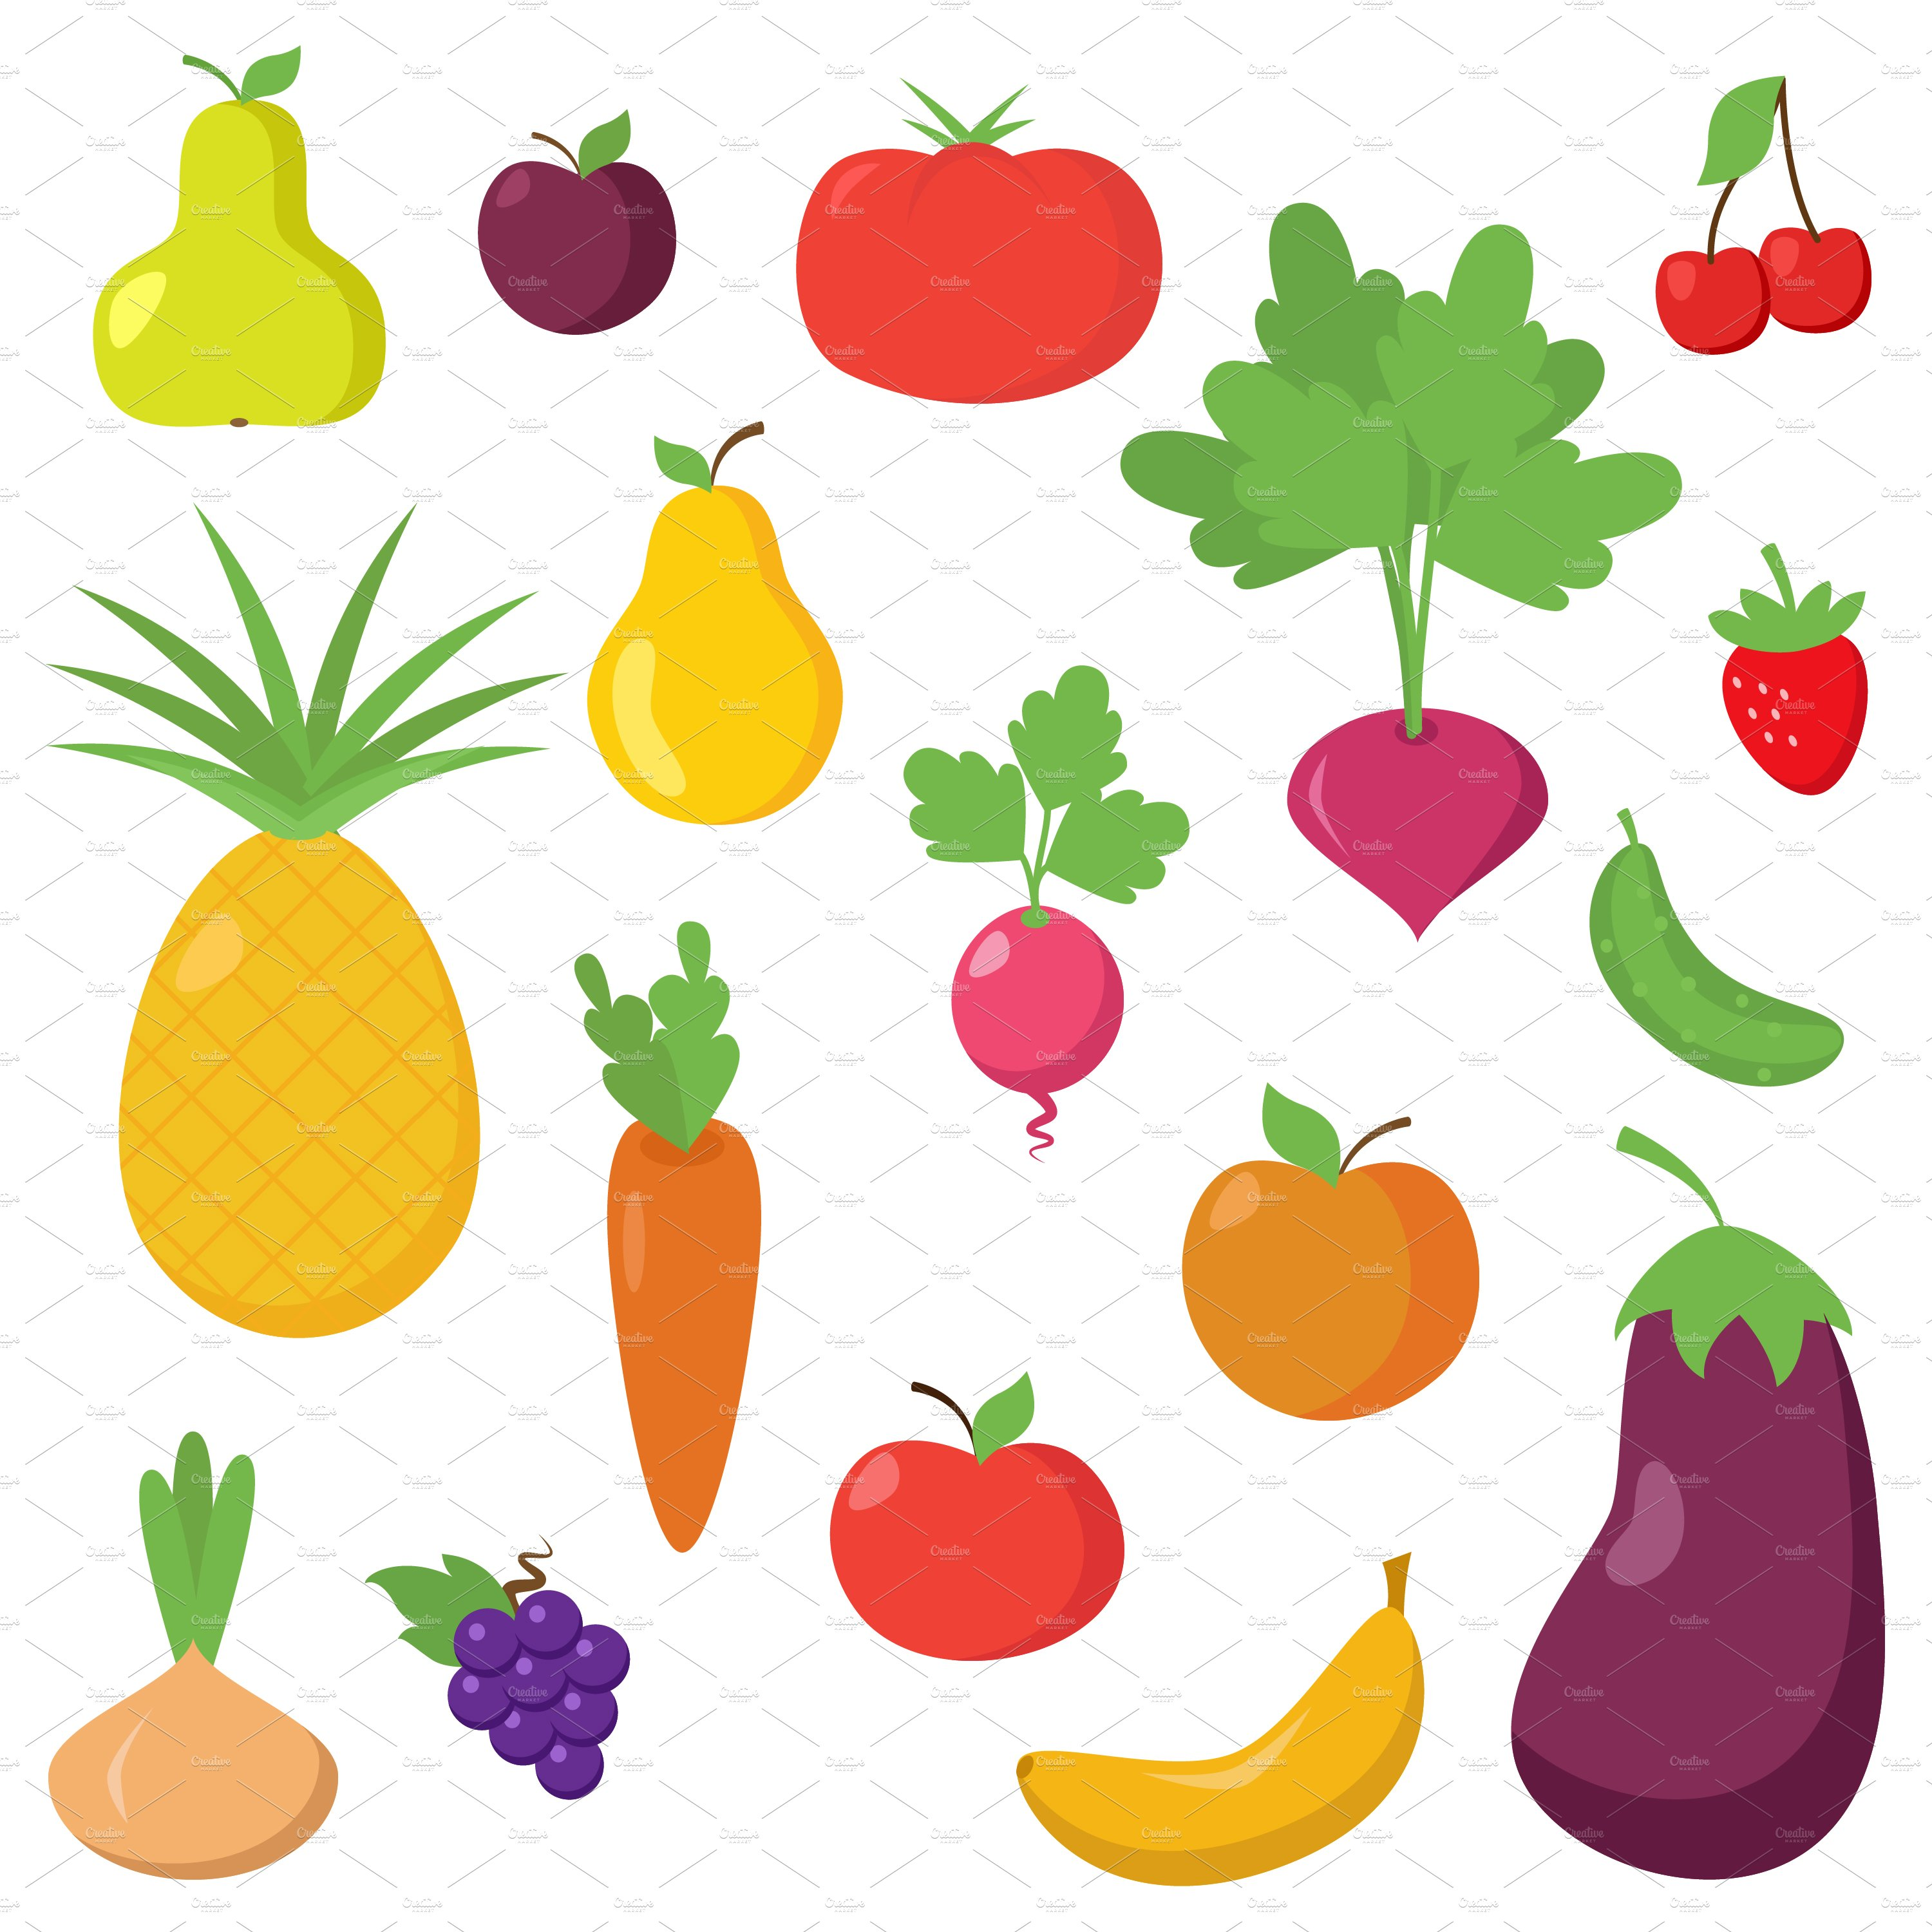 Fruit and Vegetable Vectors/Clipart ~ Illustrations ...